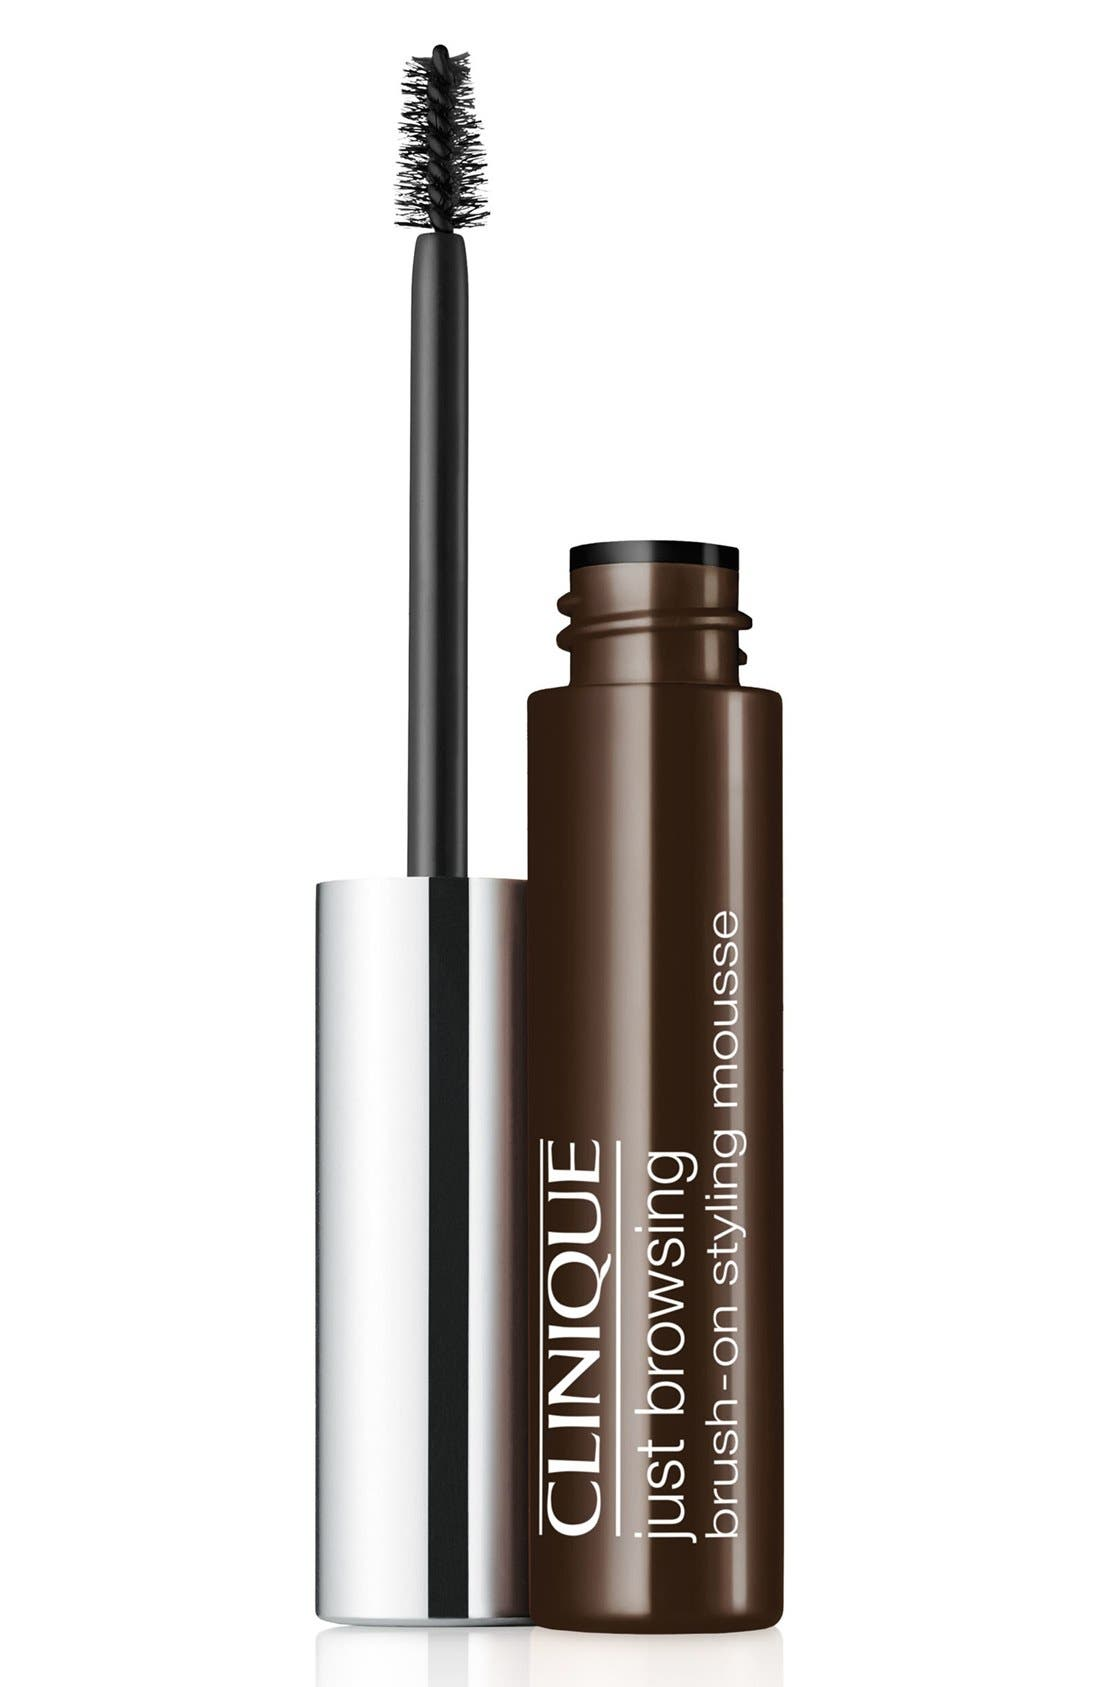 CLINIQUE, Just Browsing Brush-On Styling Mousse, Main thumbnail 1, color, BLACK/ BROWN